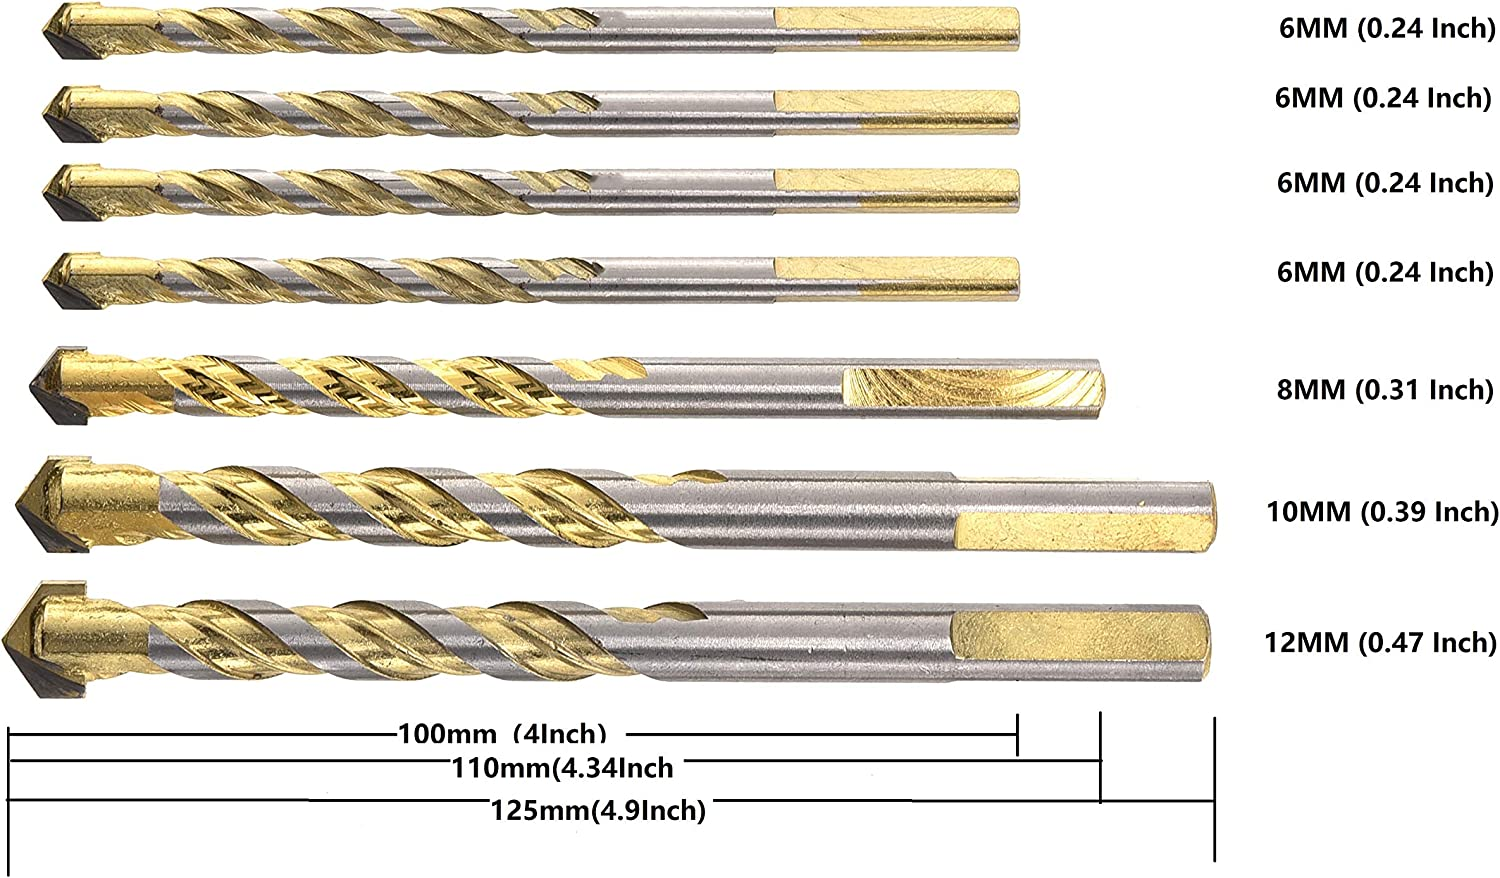 REDDSN Masonry Drill Bits Set,Triangular Shank Multi Material Drill Bit Set for Drilling Tile Ceramic Plastic and Wood Include Size 6//6//6//6//8//10//12mm 7pcs